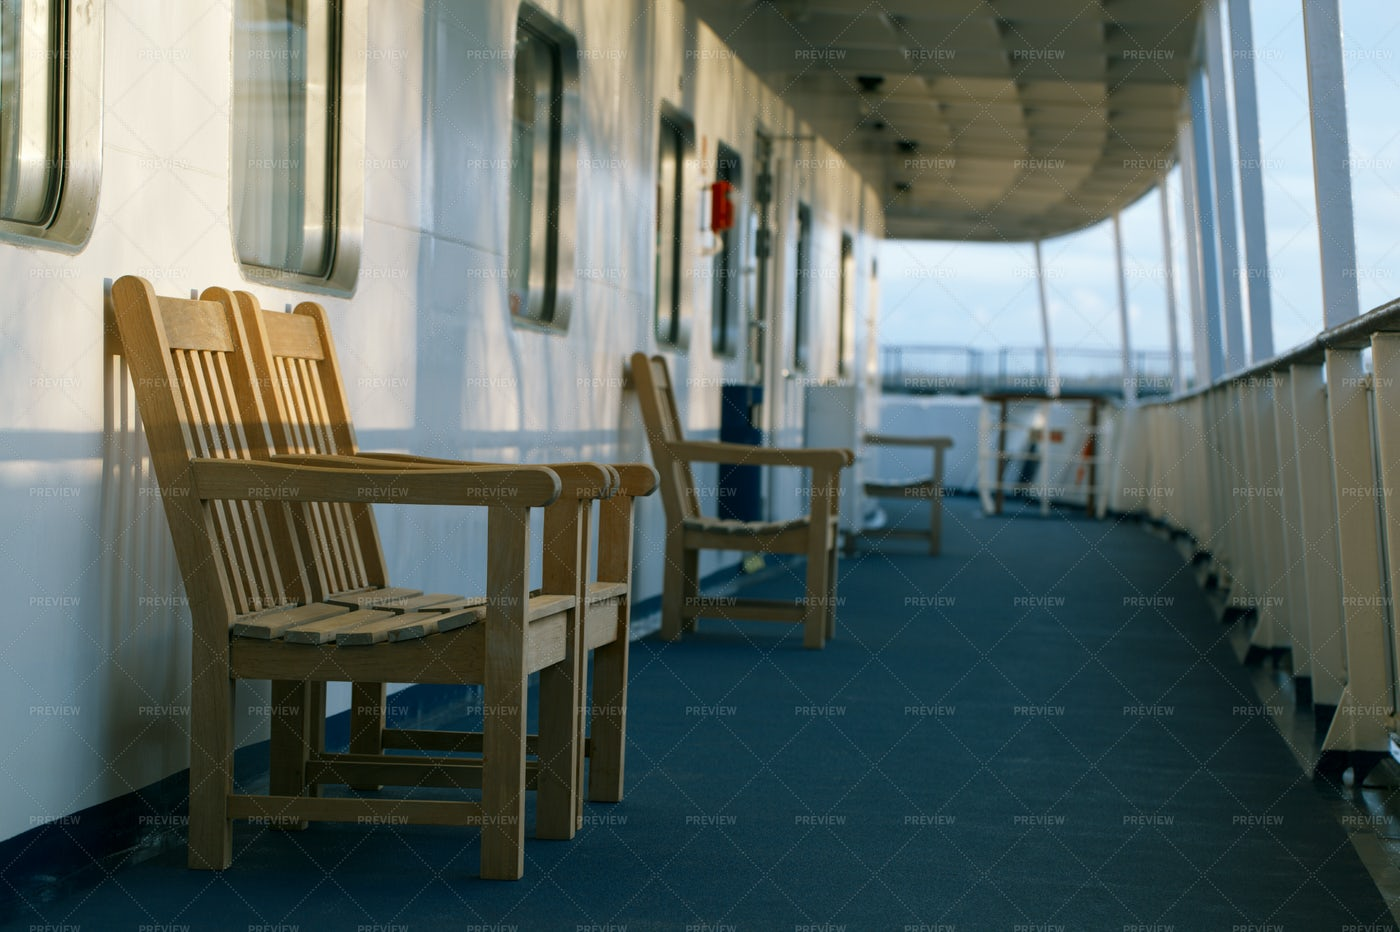 Wooden Chairs Of Cruise Line: Stock Photos